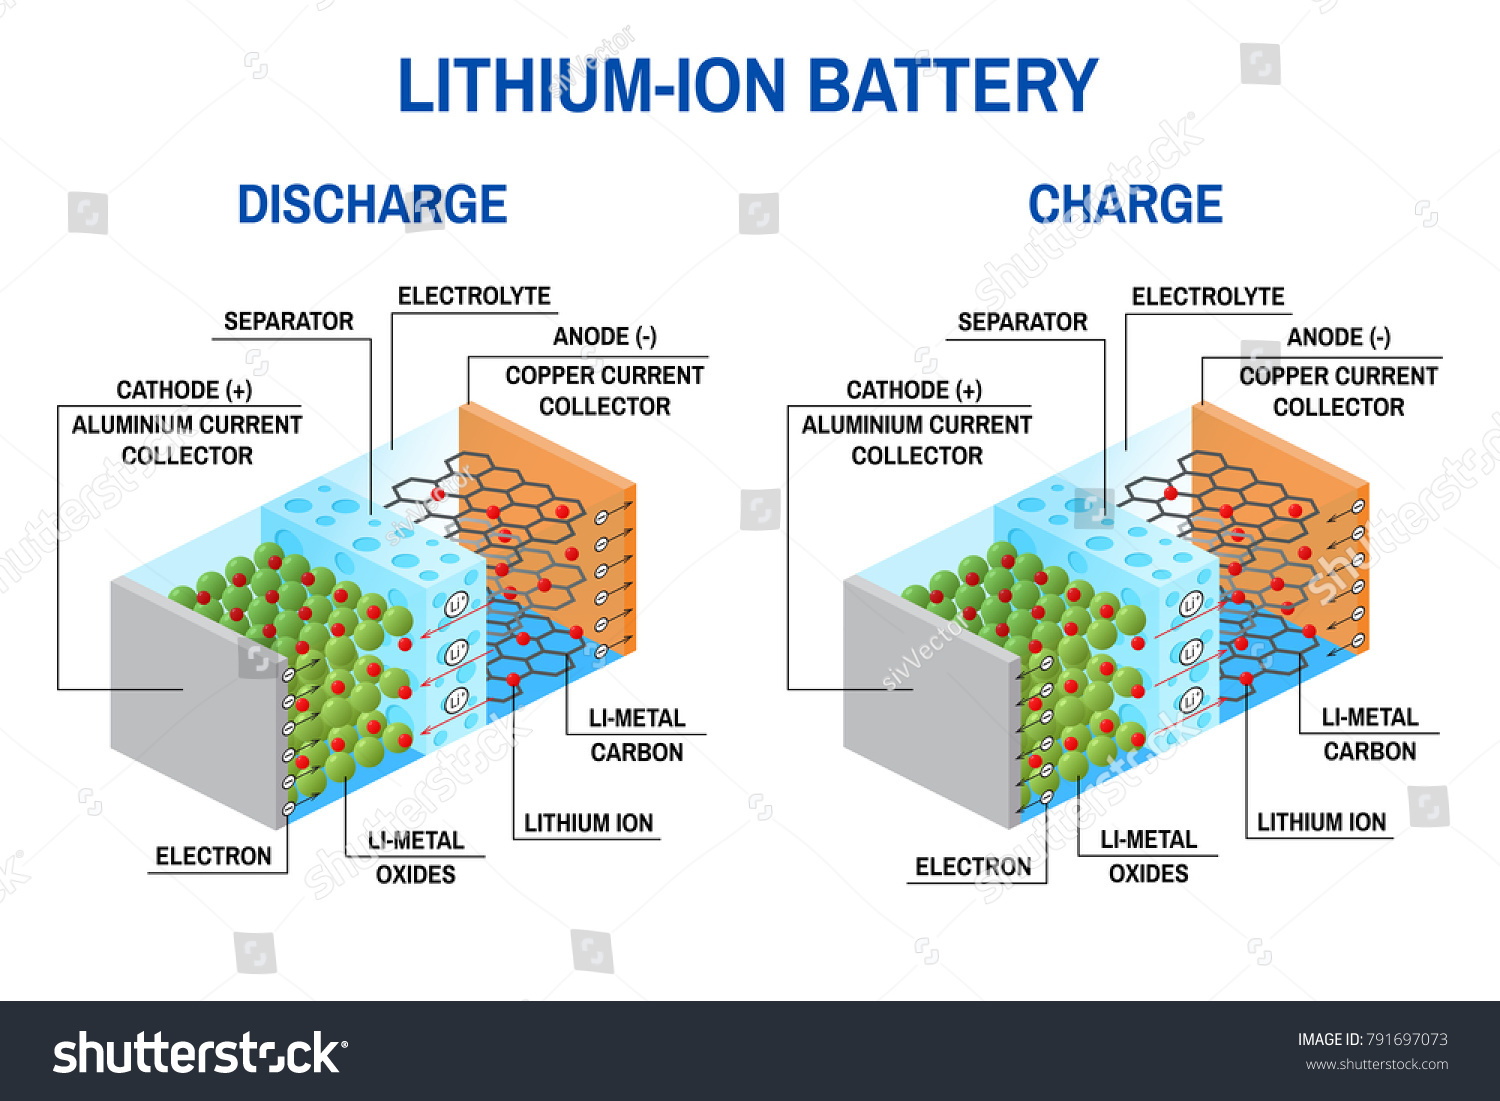 liion battery diagram rechargeable battery which stock illustration Rechargeable Battery Cell Diagrams